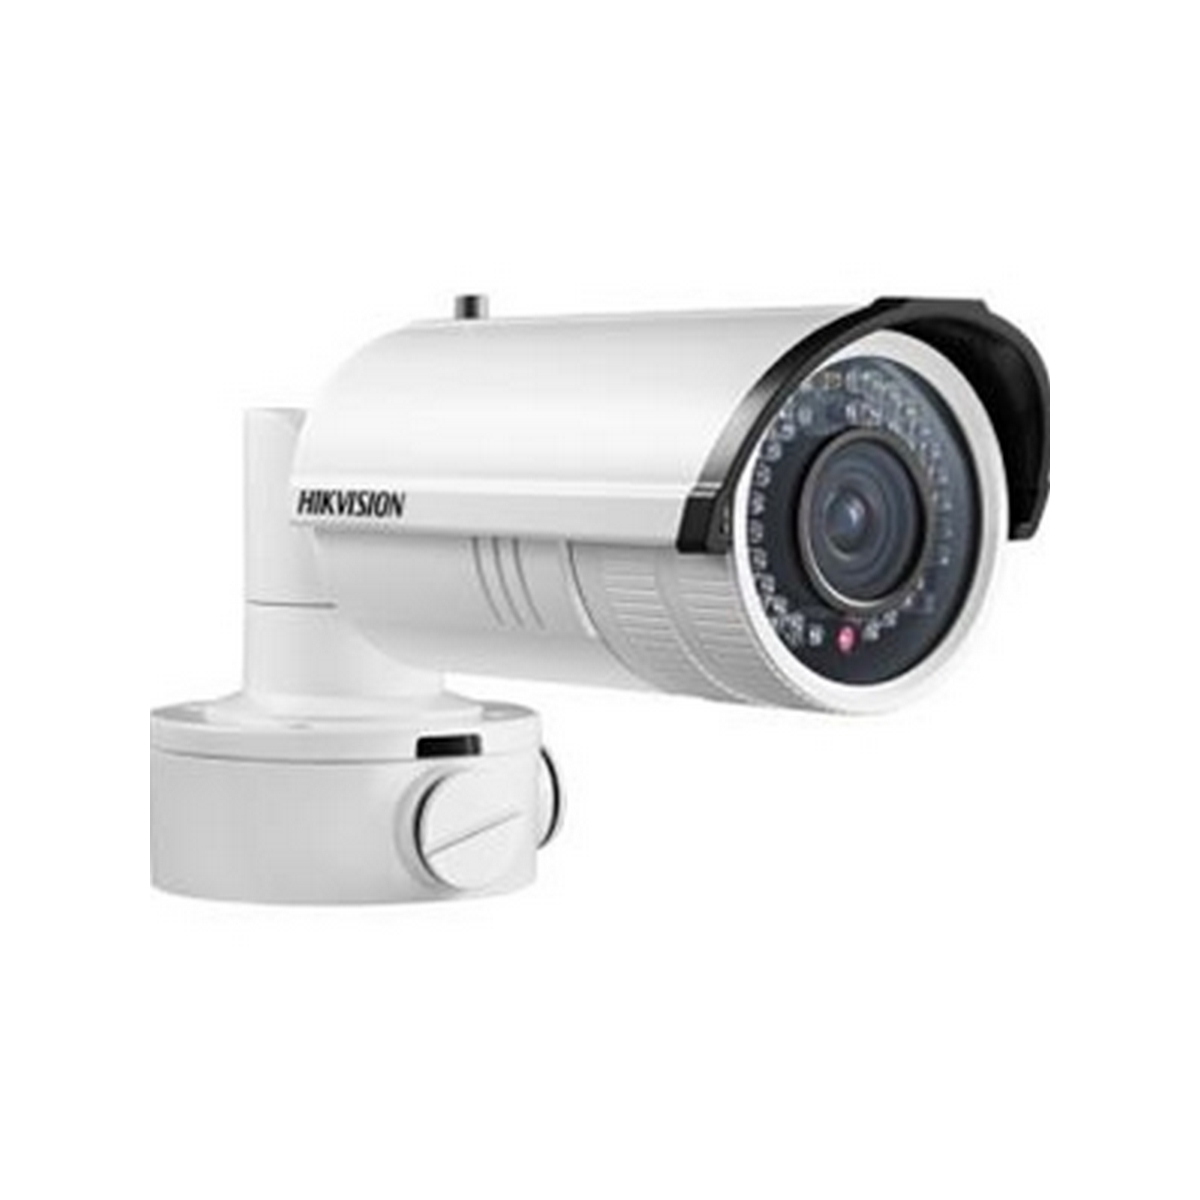 Hikvision 3MP Day/Night IR Outdoor Bullet Camera with 8-32mm Varifocal Lens and Heater PoE+